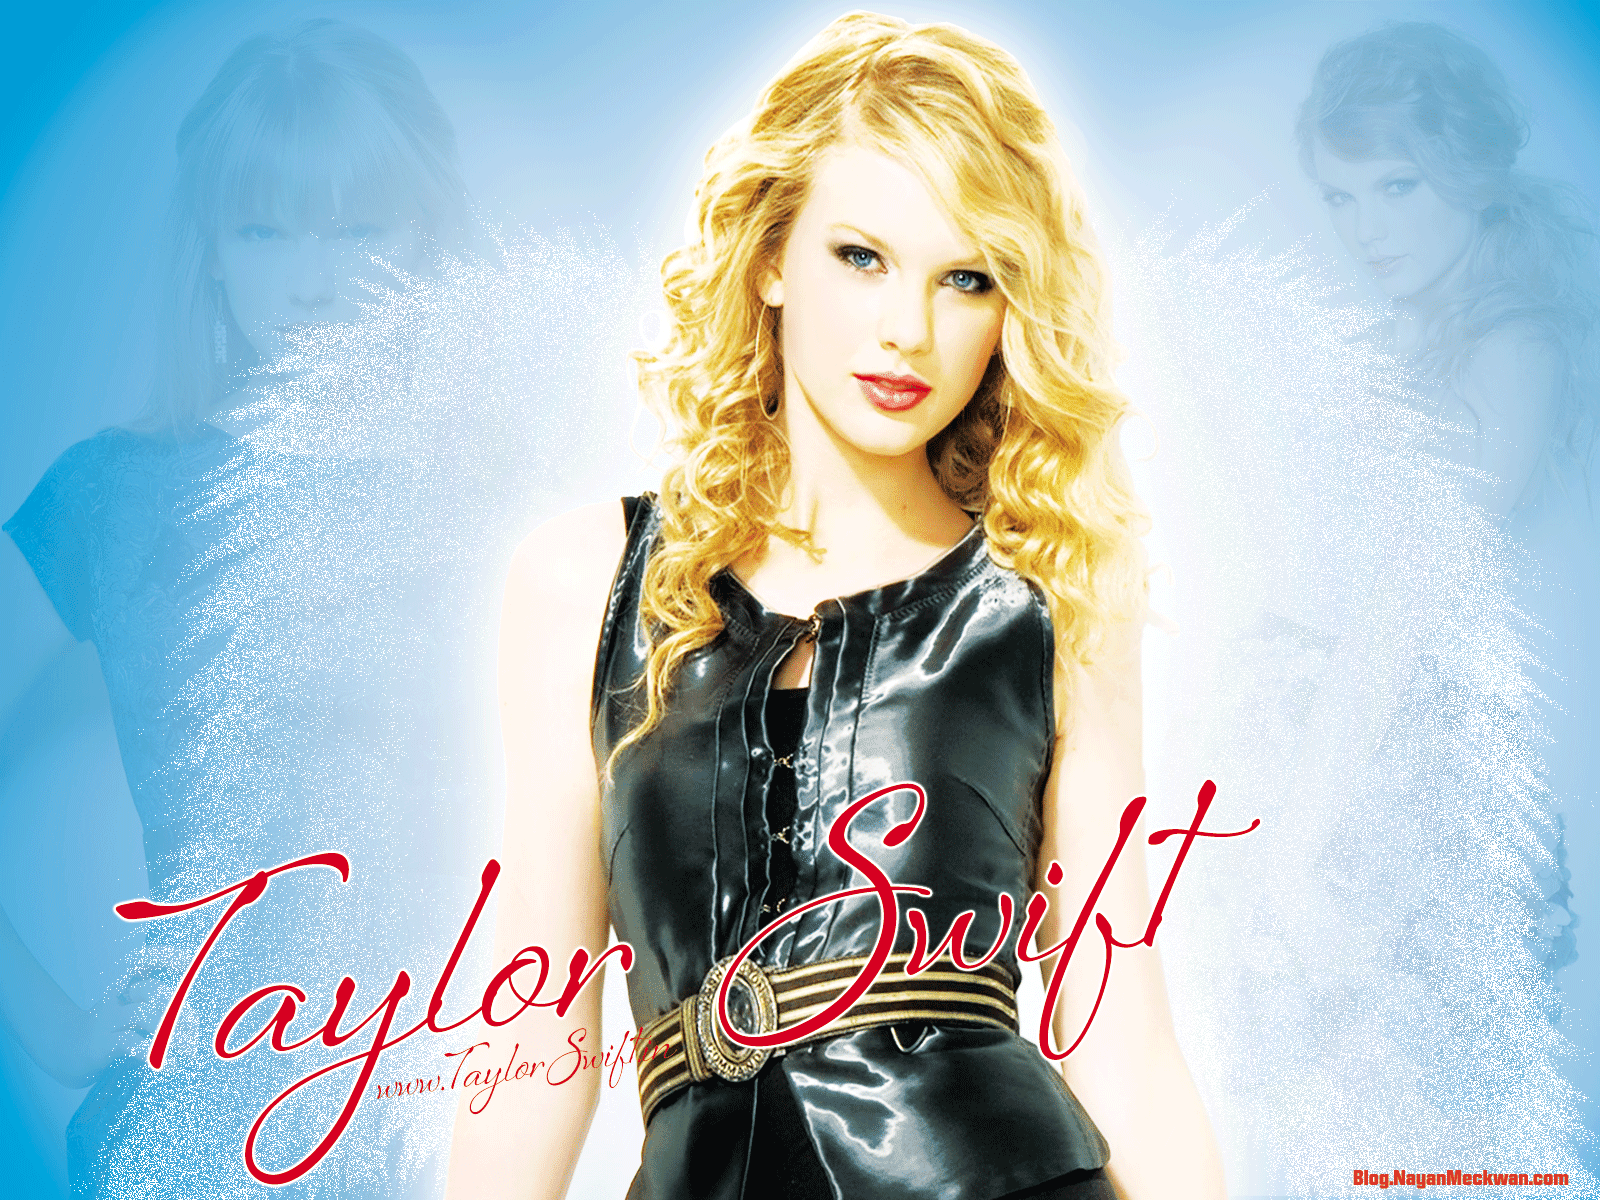 Taylor swift Wallpaper as Angle Taylor swift